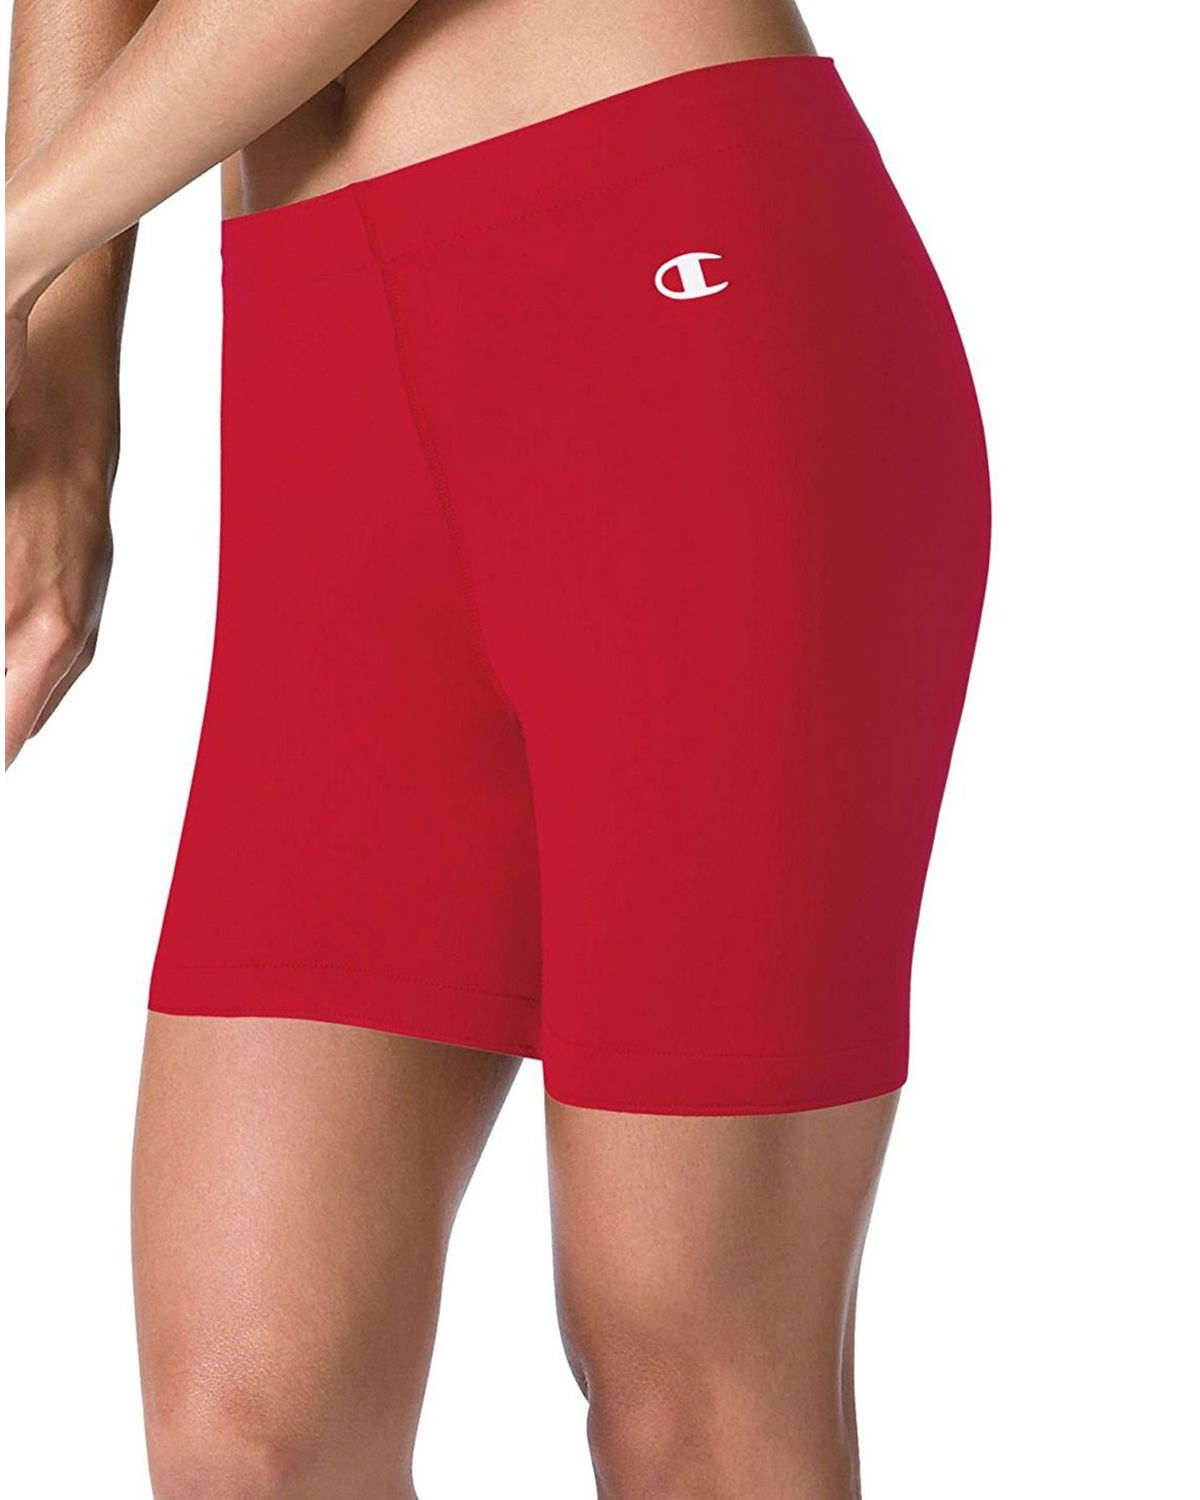 Champion M445 Womens Compression Short - Scarlet - XS M445